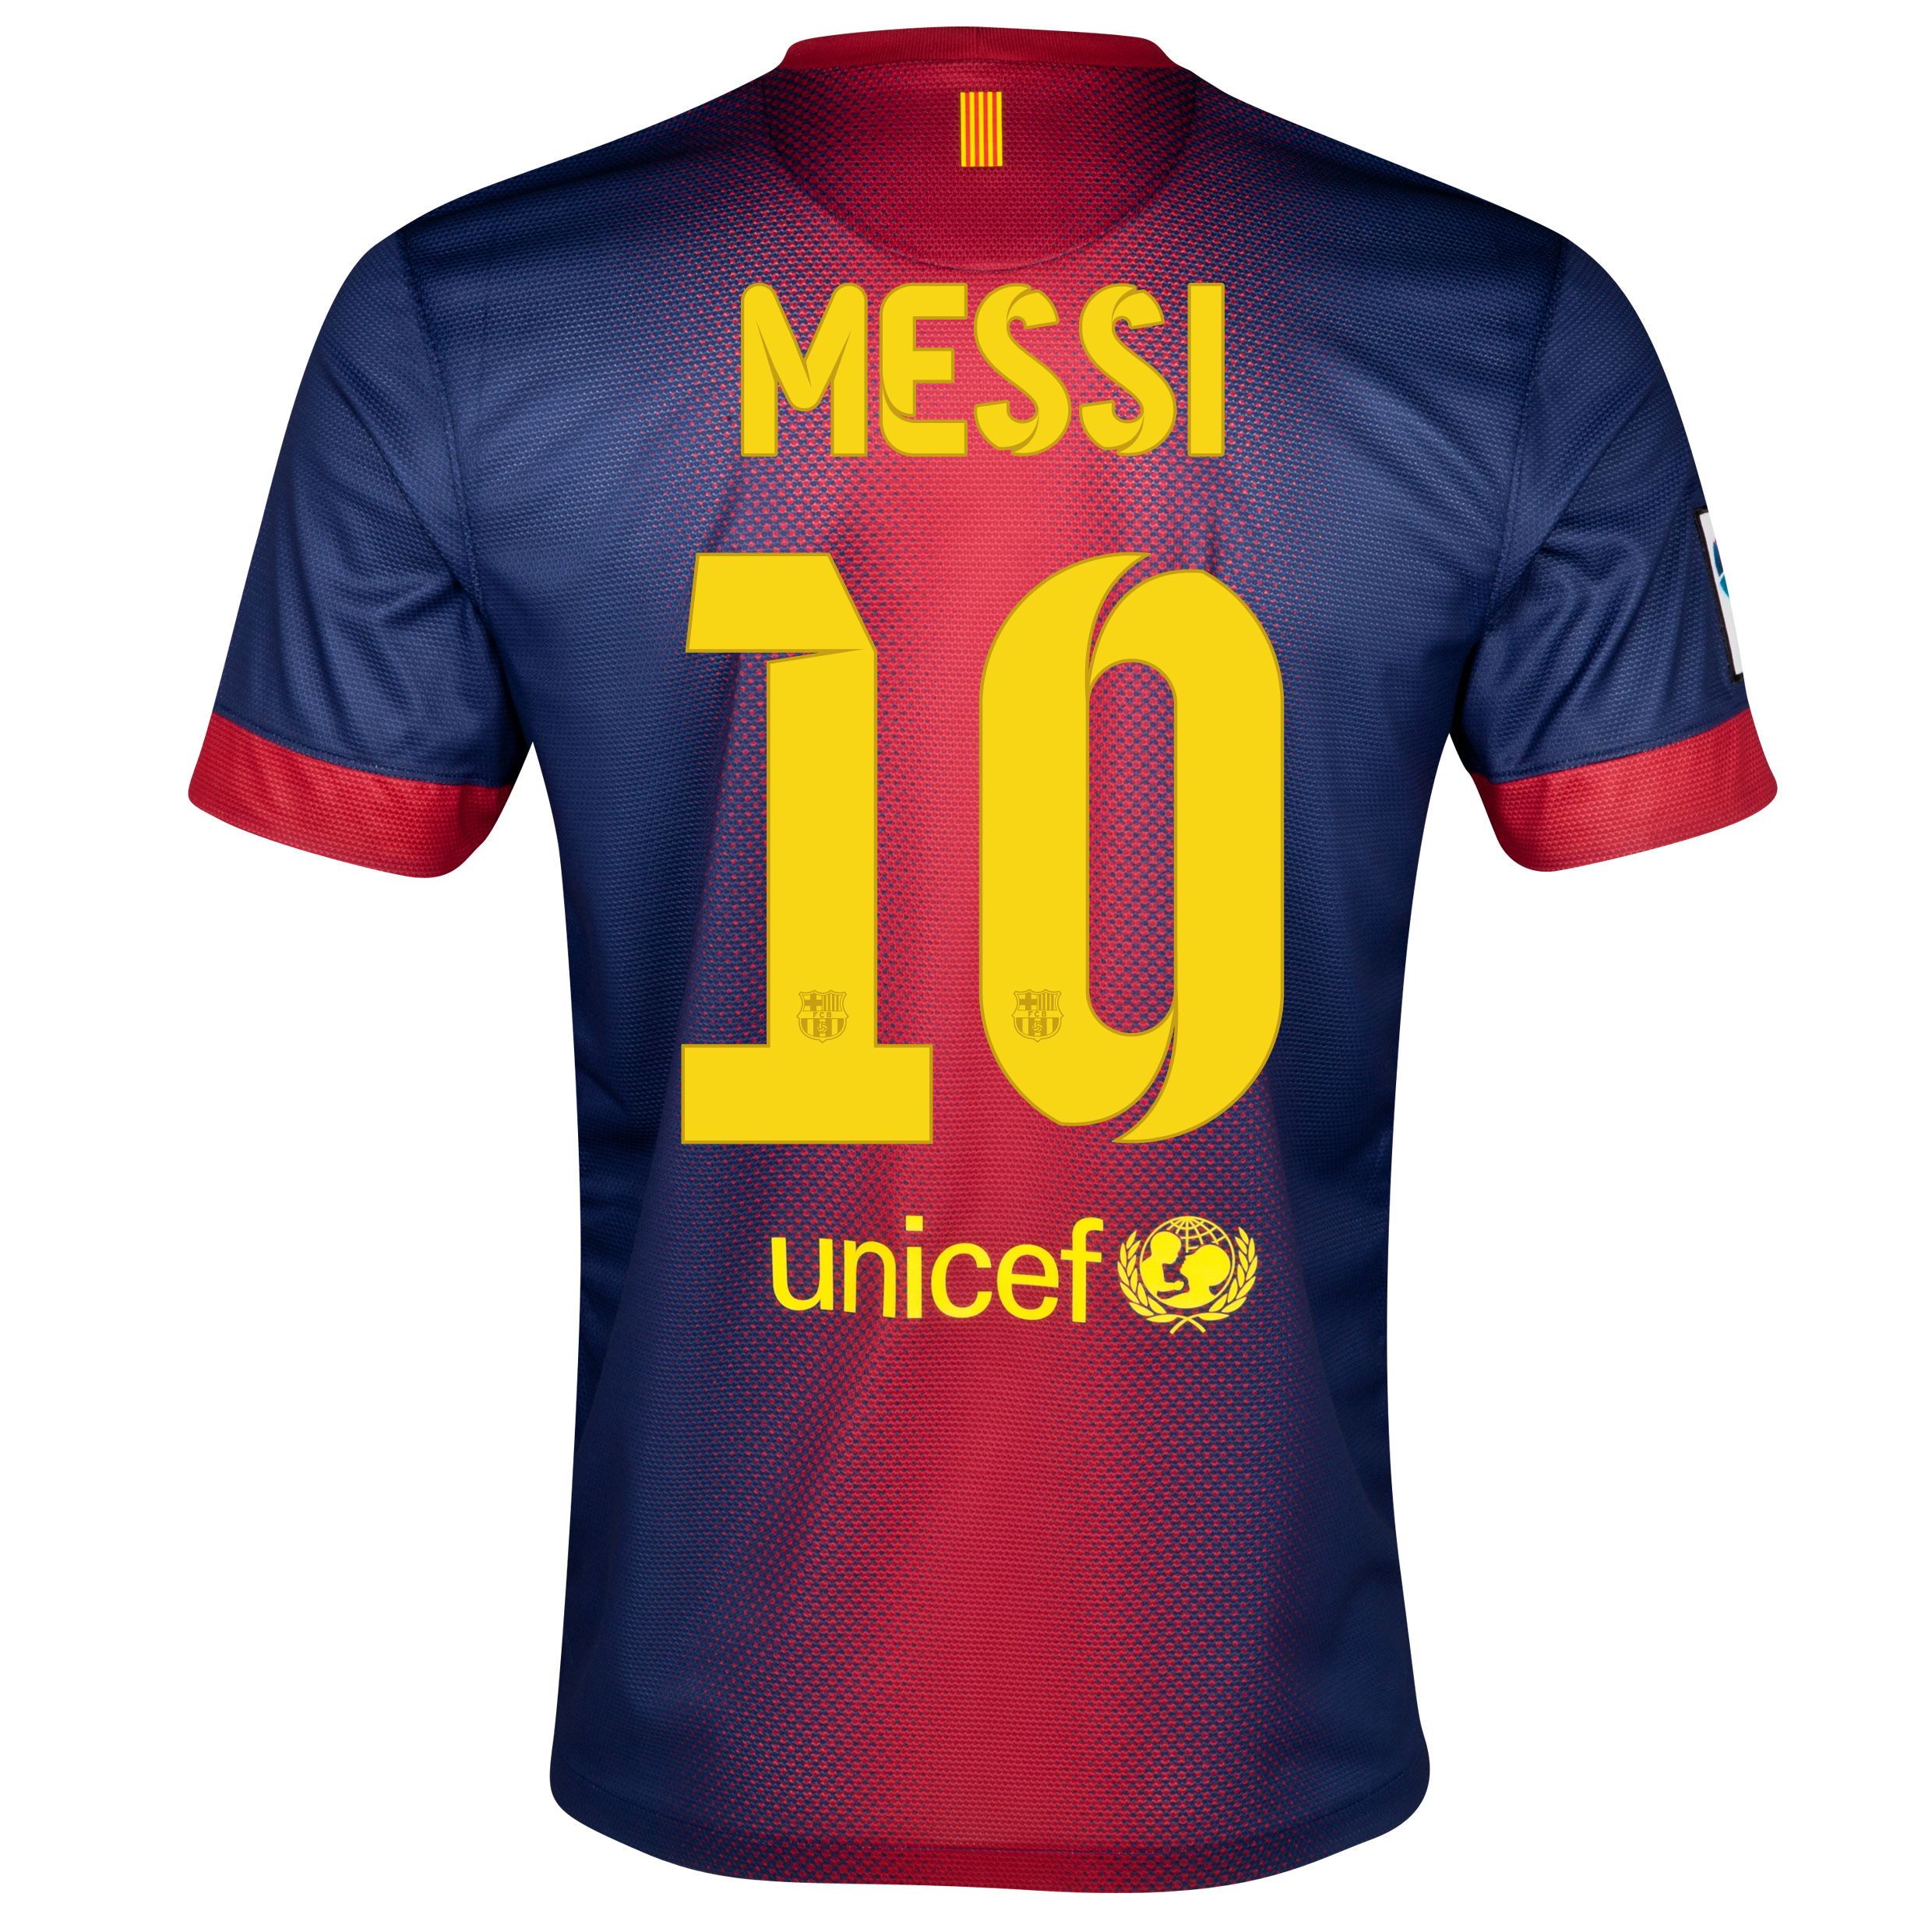 Barcelona Home Shirt 2012/13 with Messi 10 printing